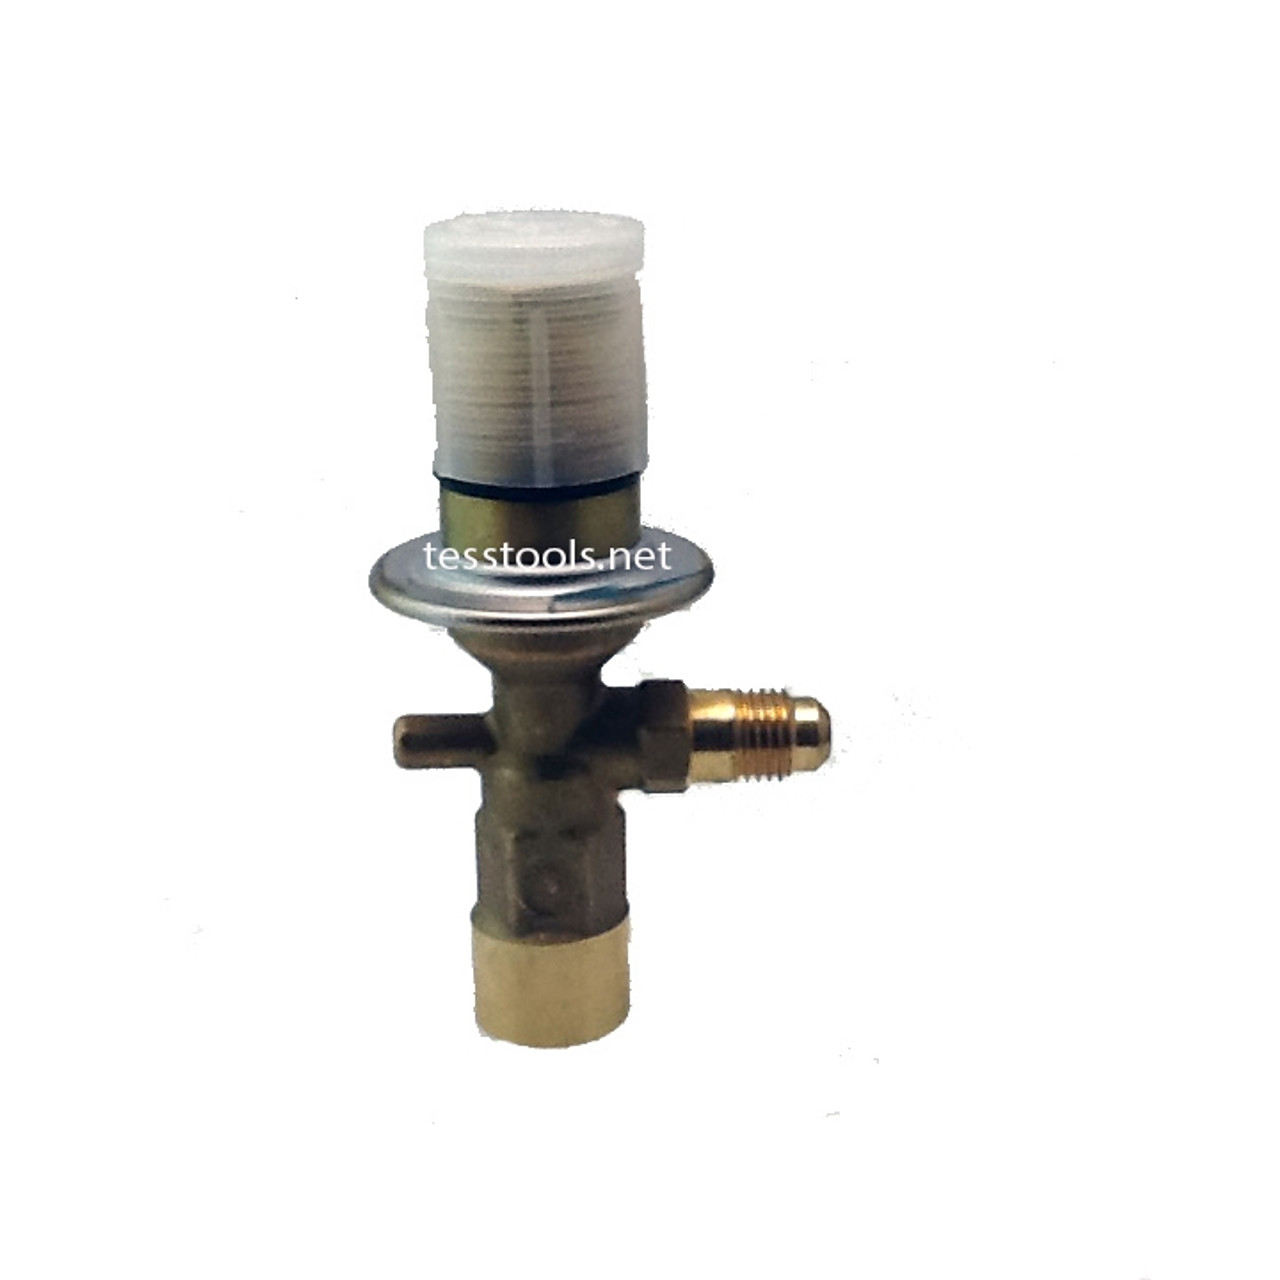 ROBINAIR RA17424 Replacement Expansion Valve